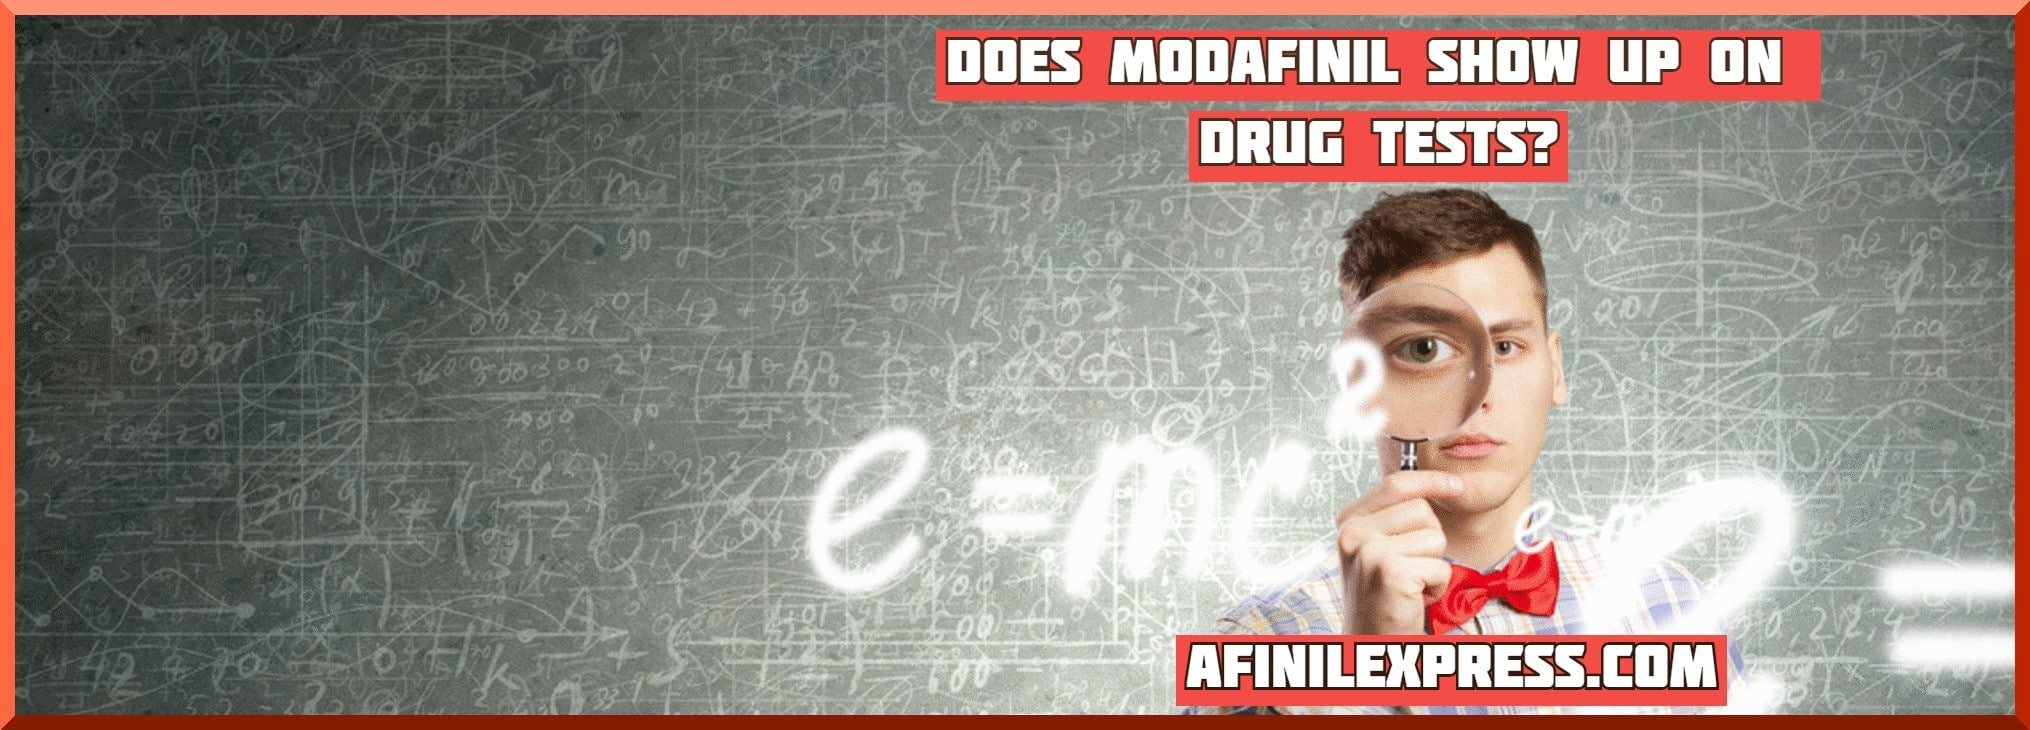 Does Modafinil Show Up On Drug Tests?